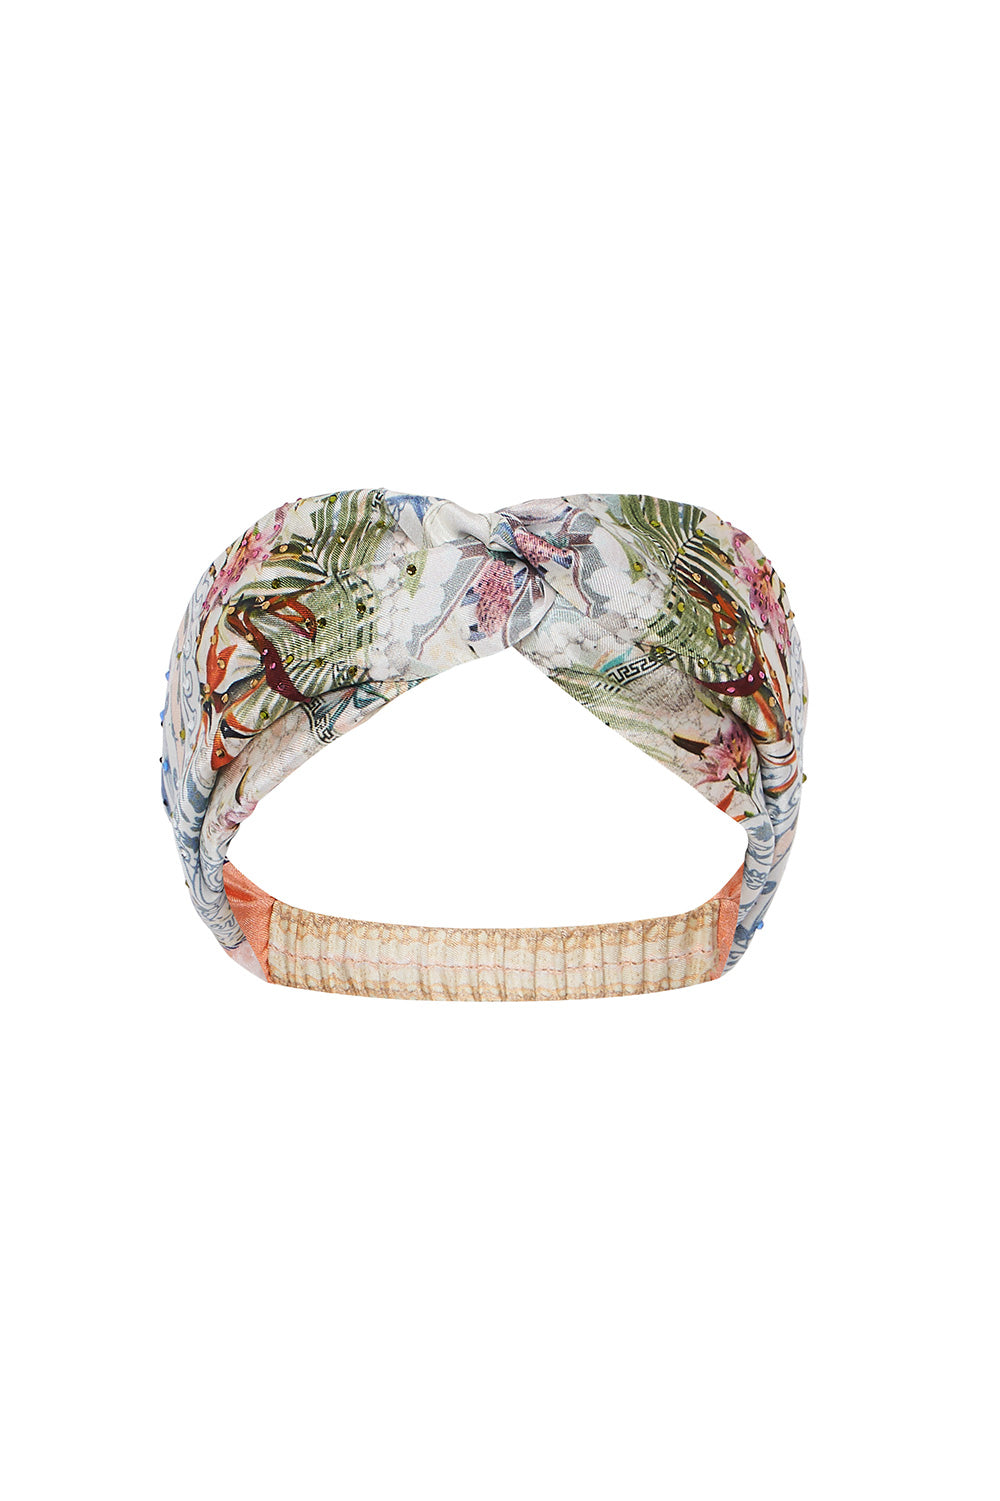 WOVEN TWIST HEADBAND BEACH SHACK